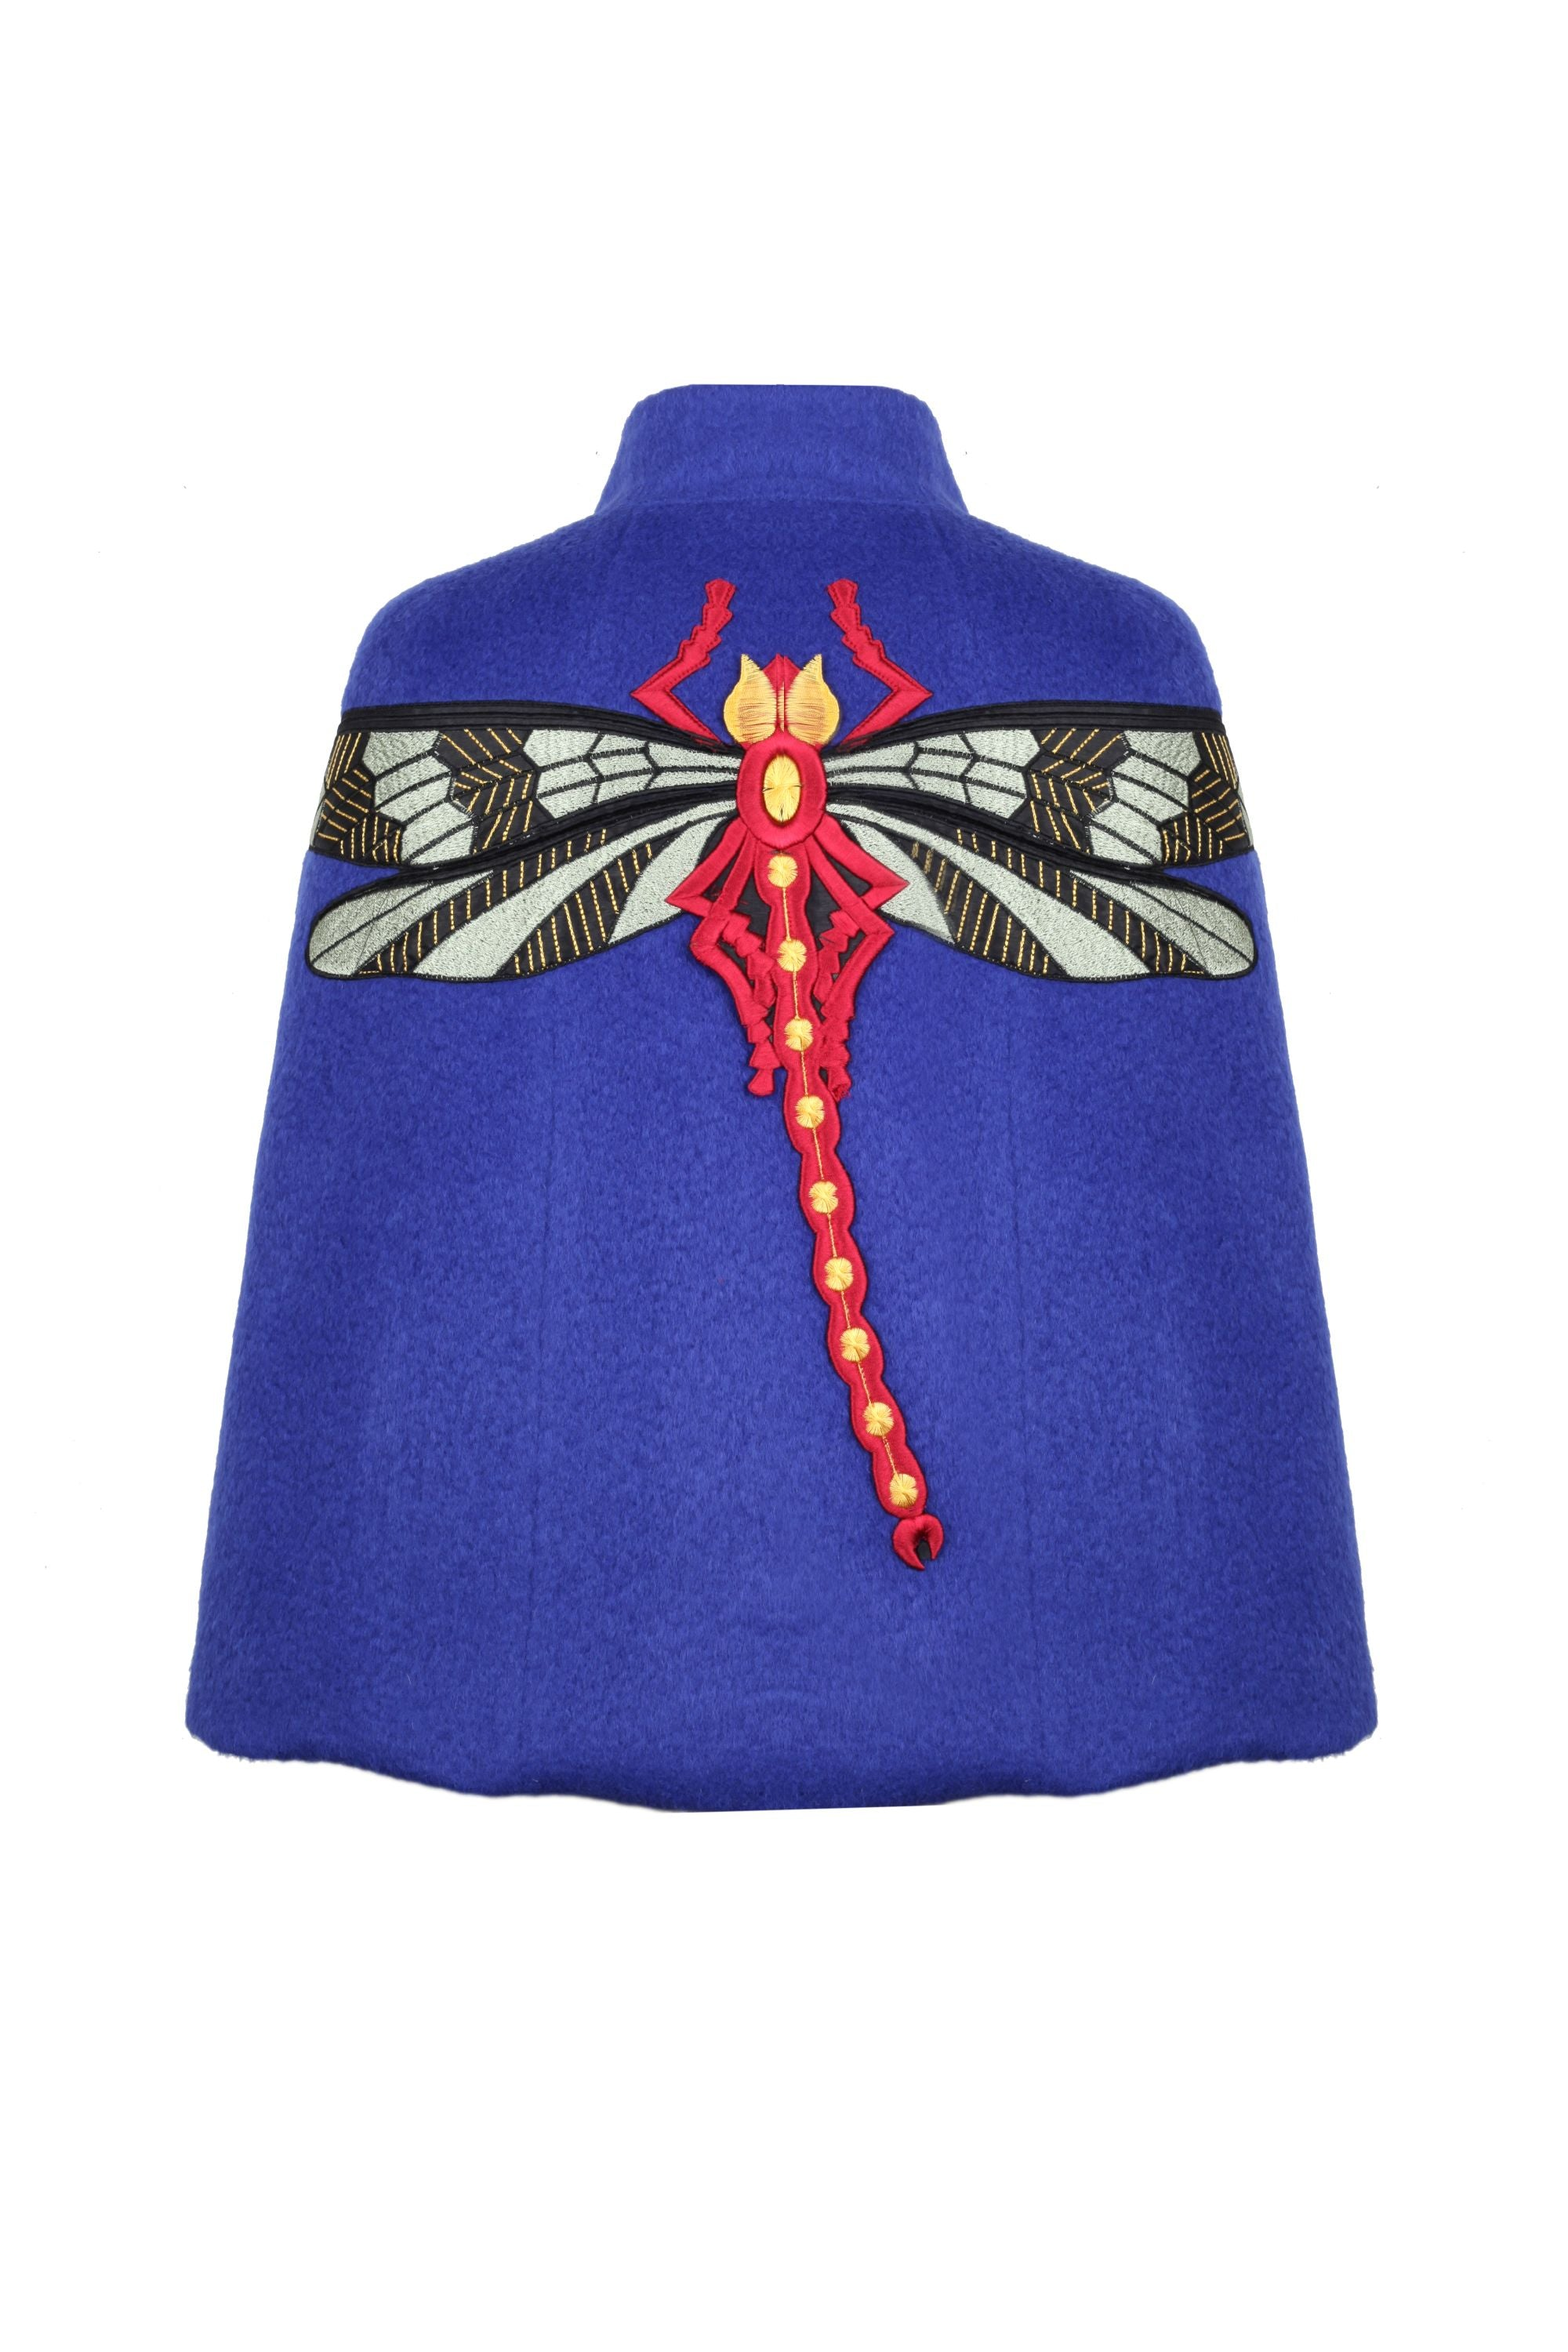 SAX WOOL CAPE WITH DRAGONFLY EMBROIDERY